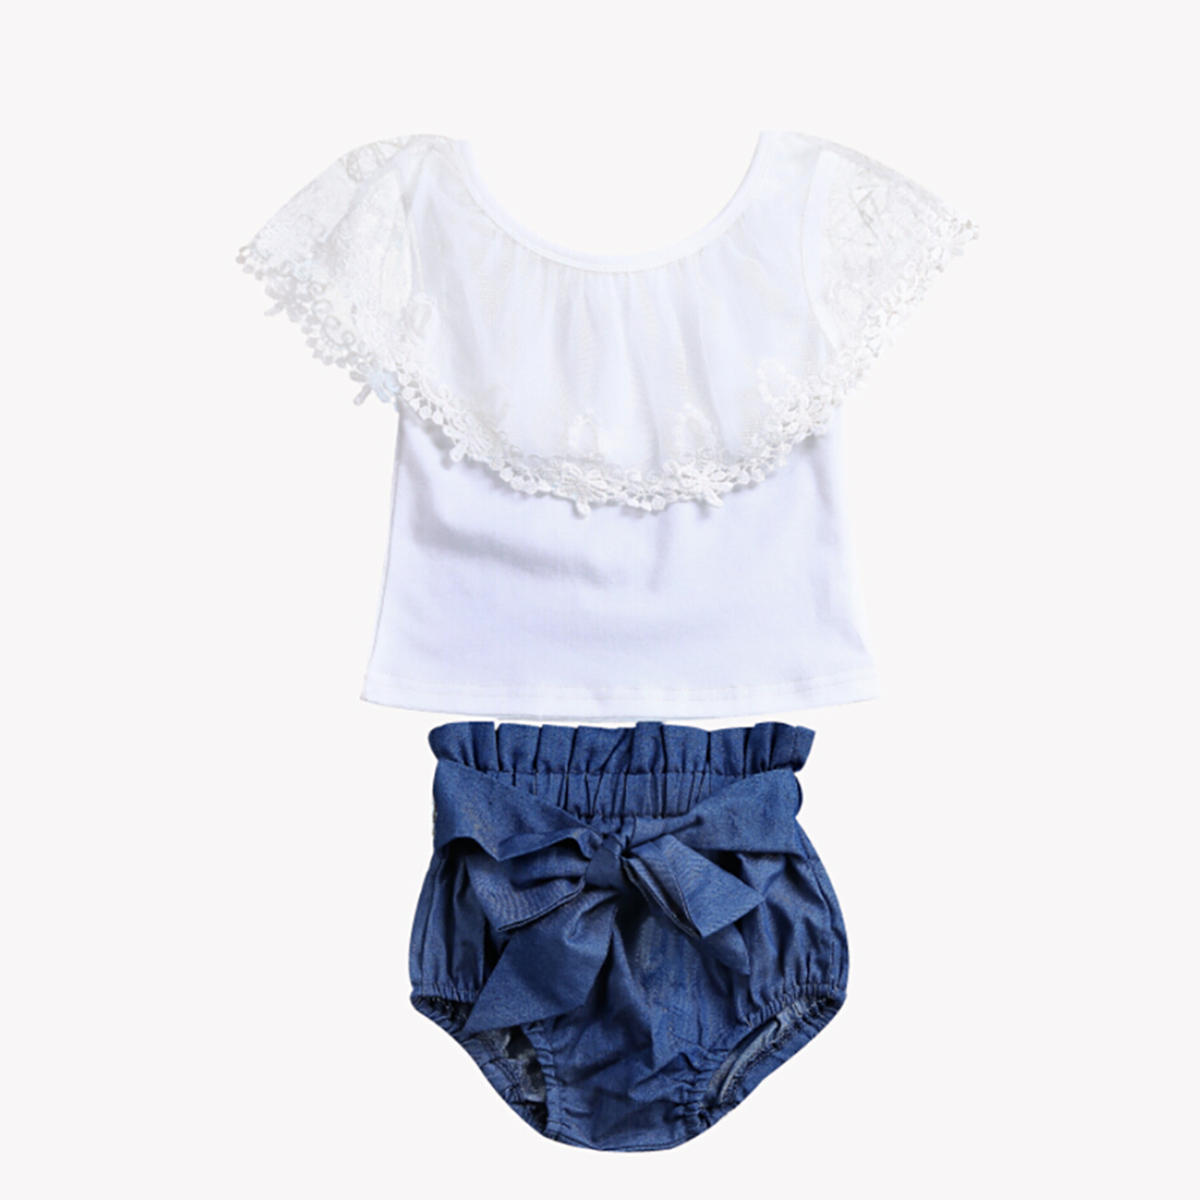 Adorable Toddler Kids Baby Girls Clothing Set Lace Tops Short Sleeve Shirt Denim Shorts Outfits Set Clothes baby girl 1st birthday outfits short sleeve infant clothing sets lace romper dress headband shoe toddler tutu set baby s clothes